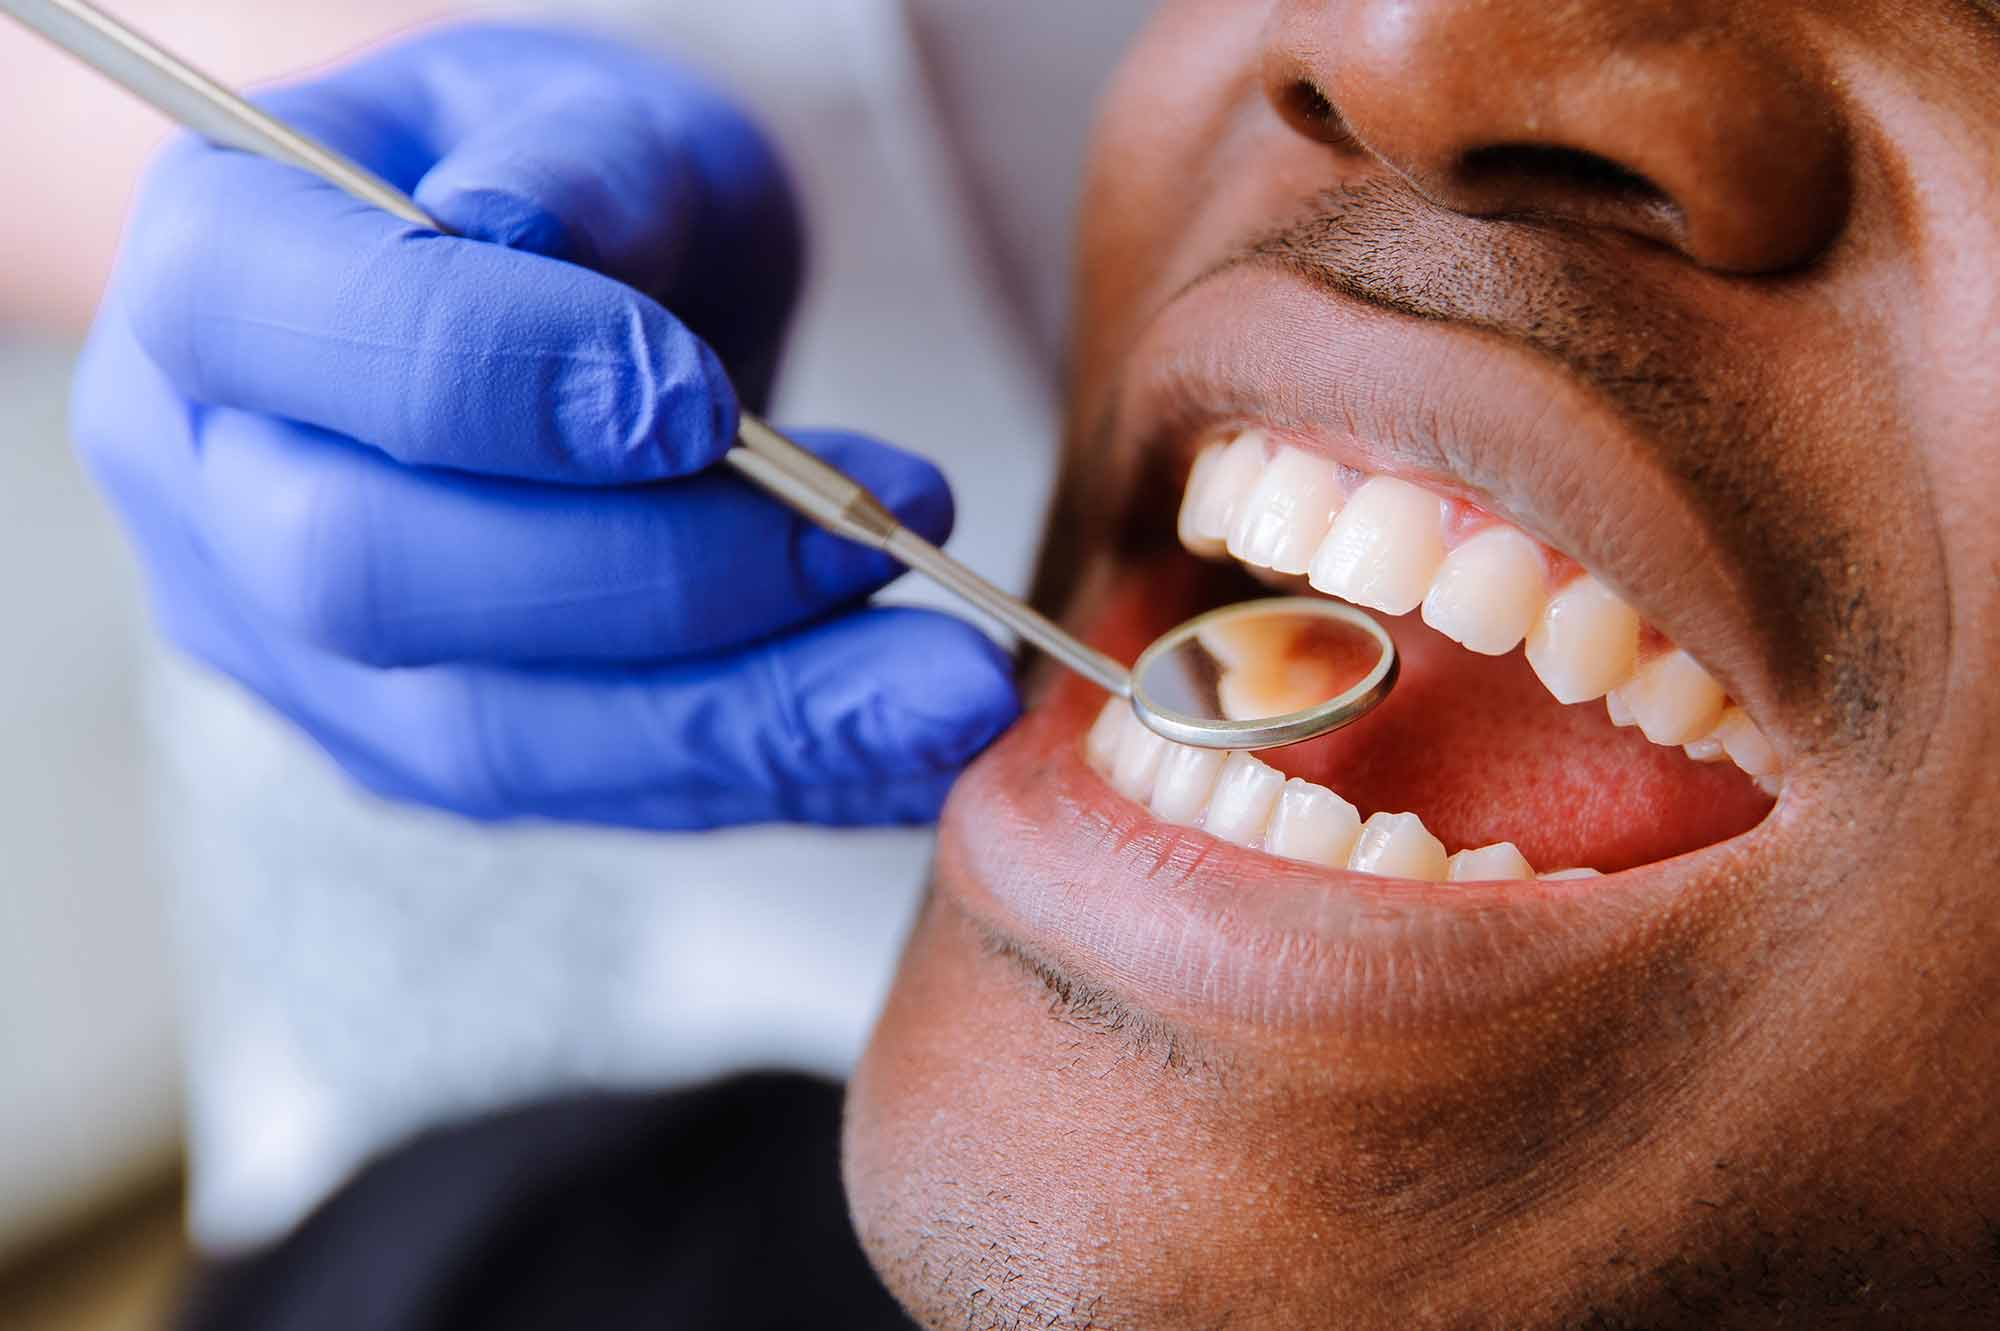 Fewer patients are receiving treatment from NHS dental practices, according to newly-released statistics